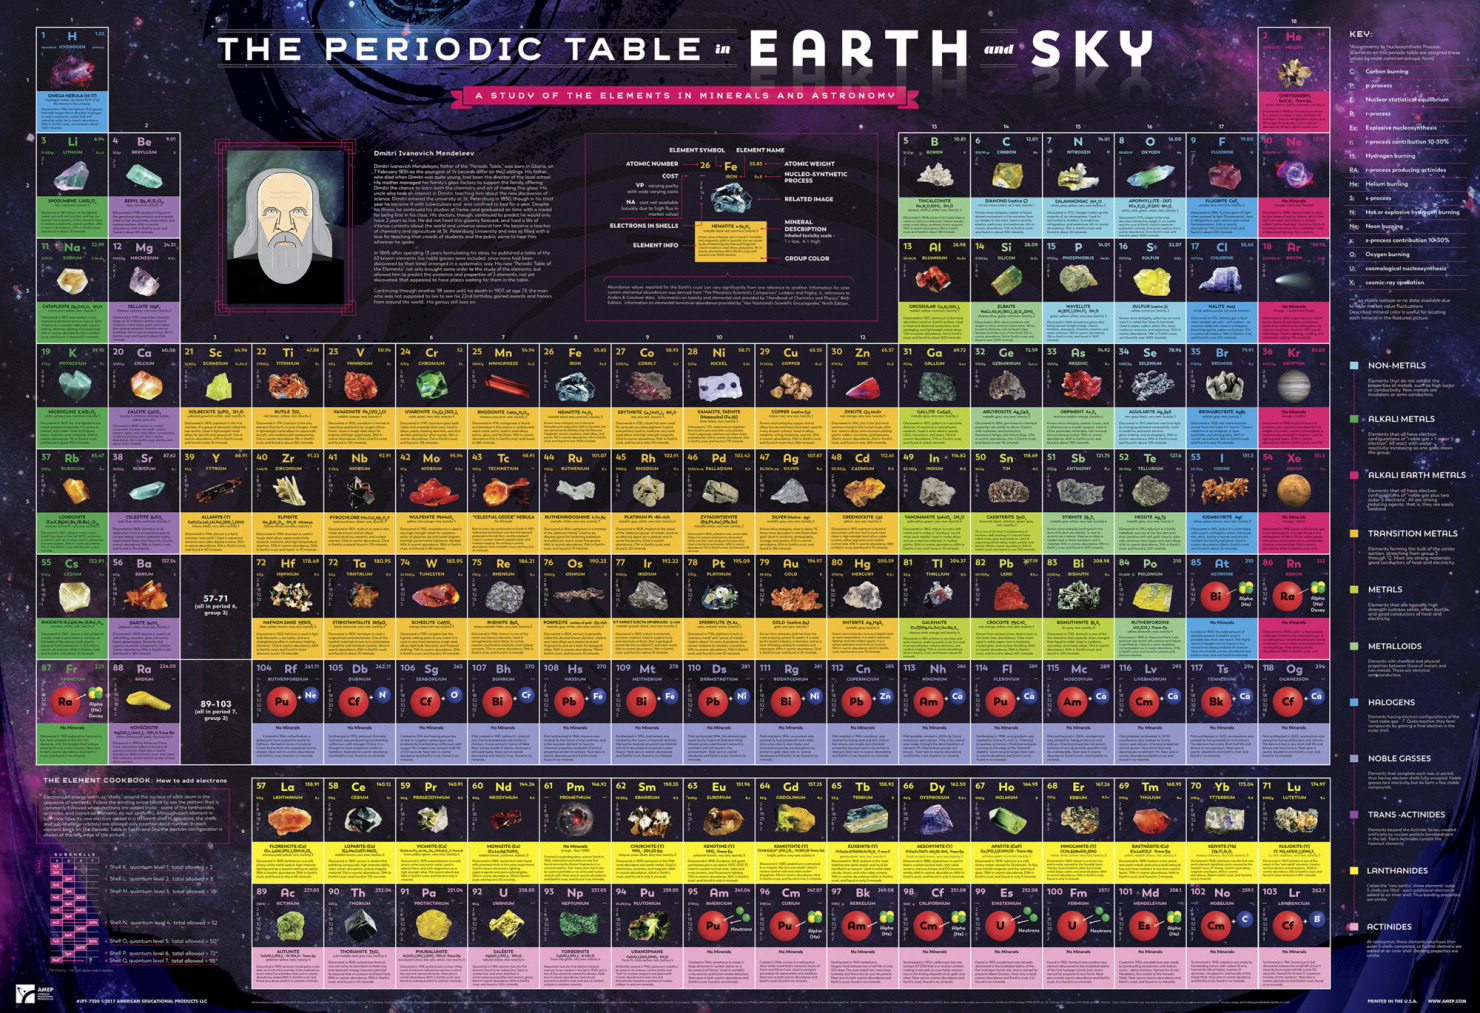 Poster frey scientific cpo science hubbard scientific periodic table in earth and sky poster urtaz Choice Image